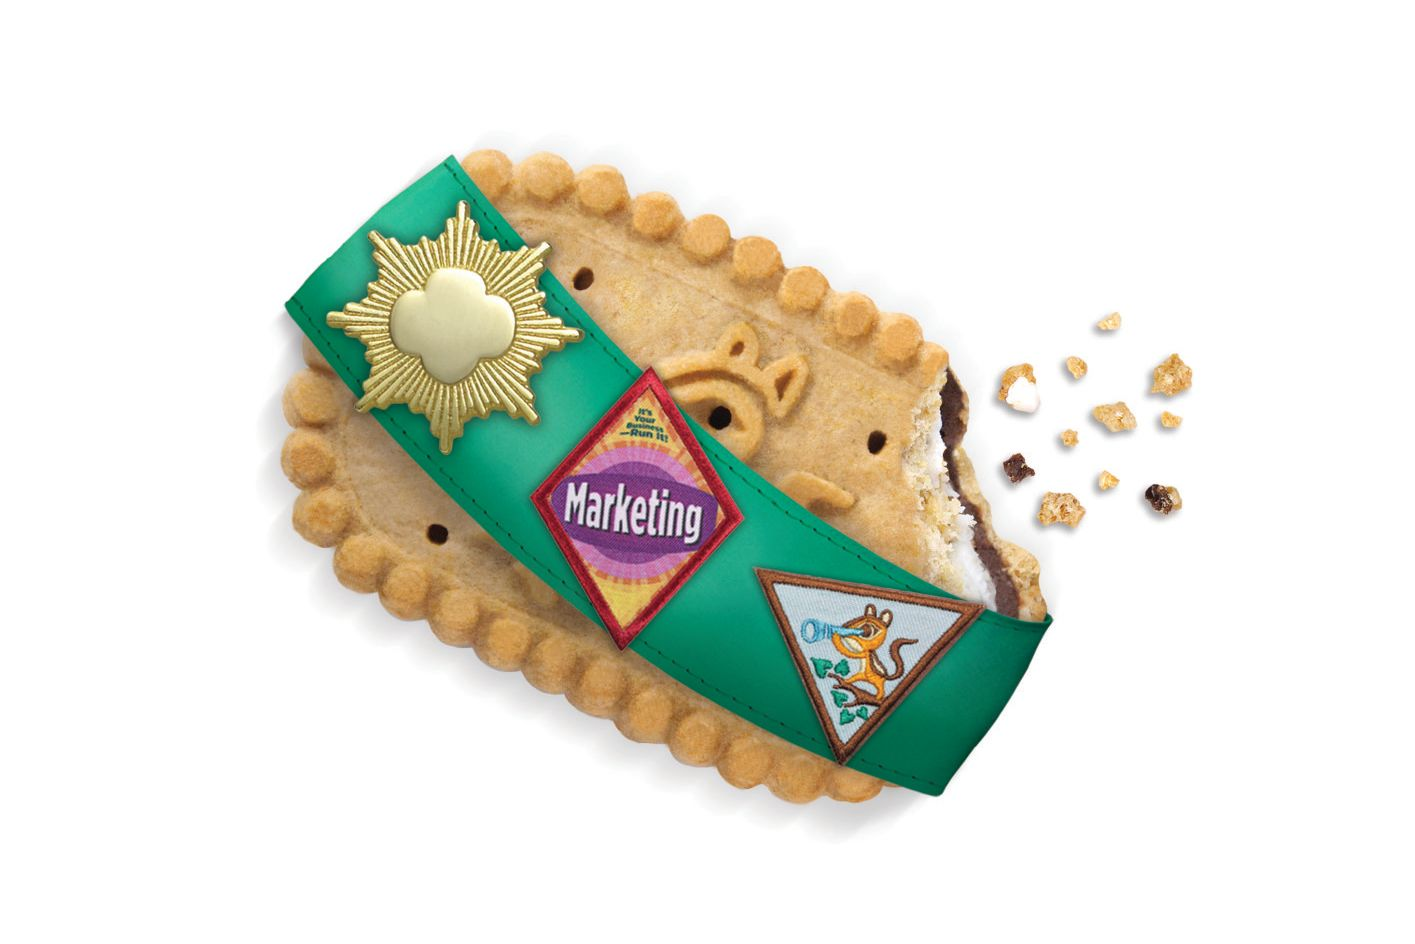 New S'mores Girl Scout Cookies Are Here to Celebrate 100 Years of Profitable Cookies